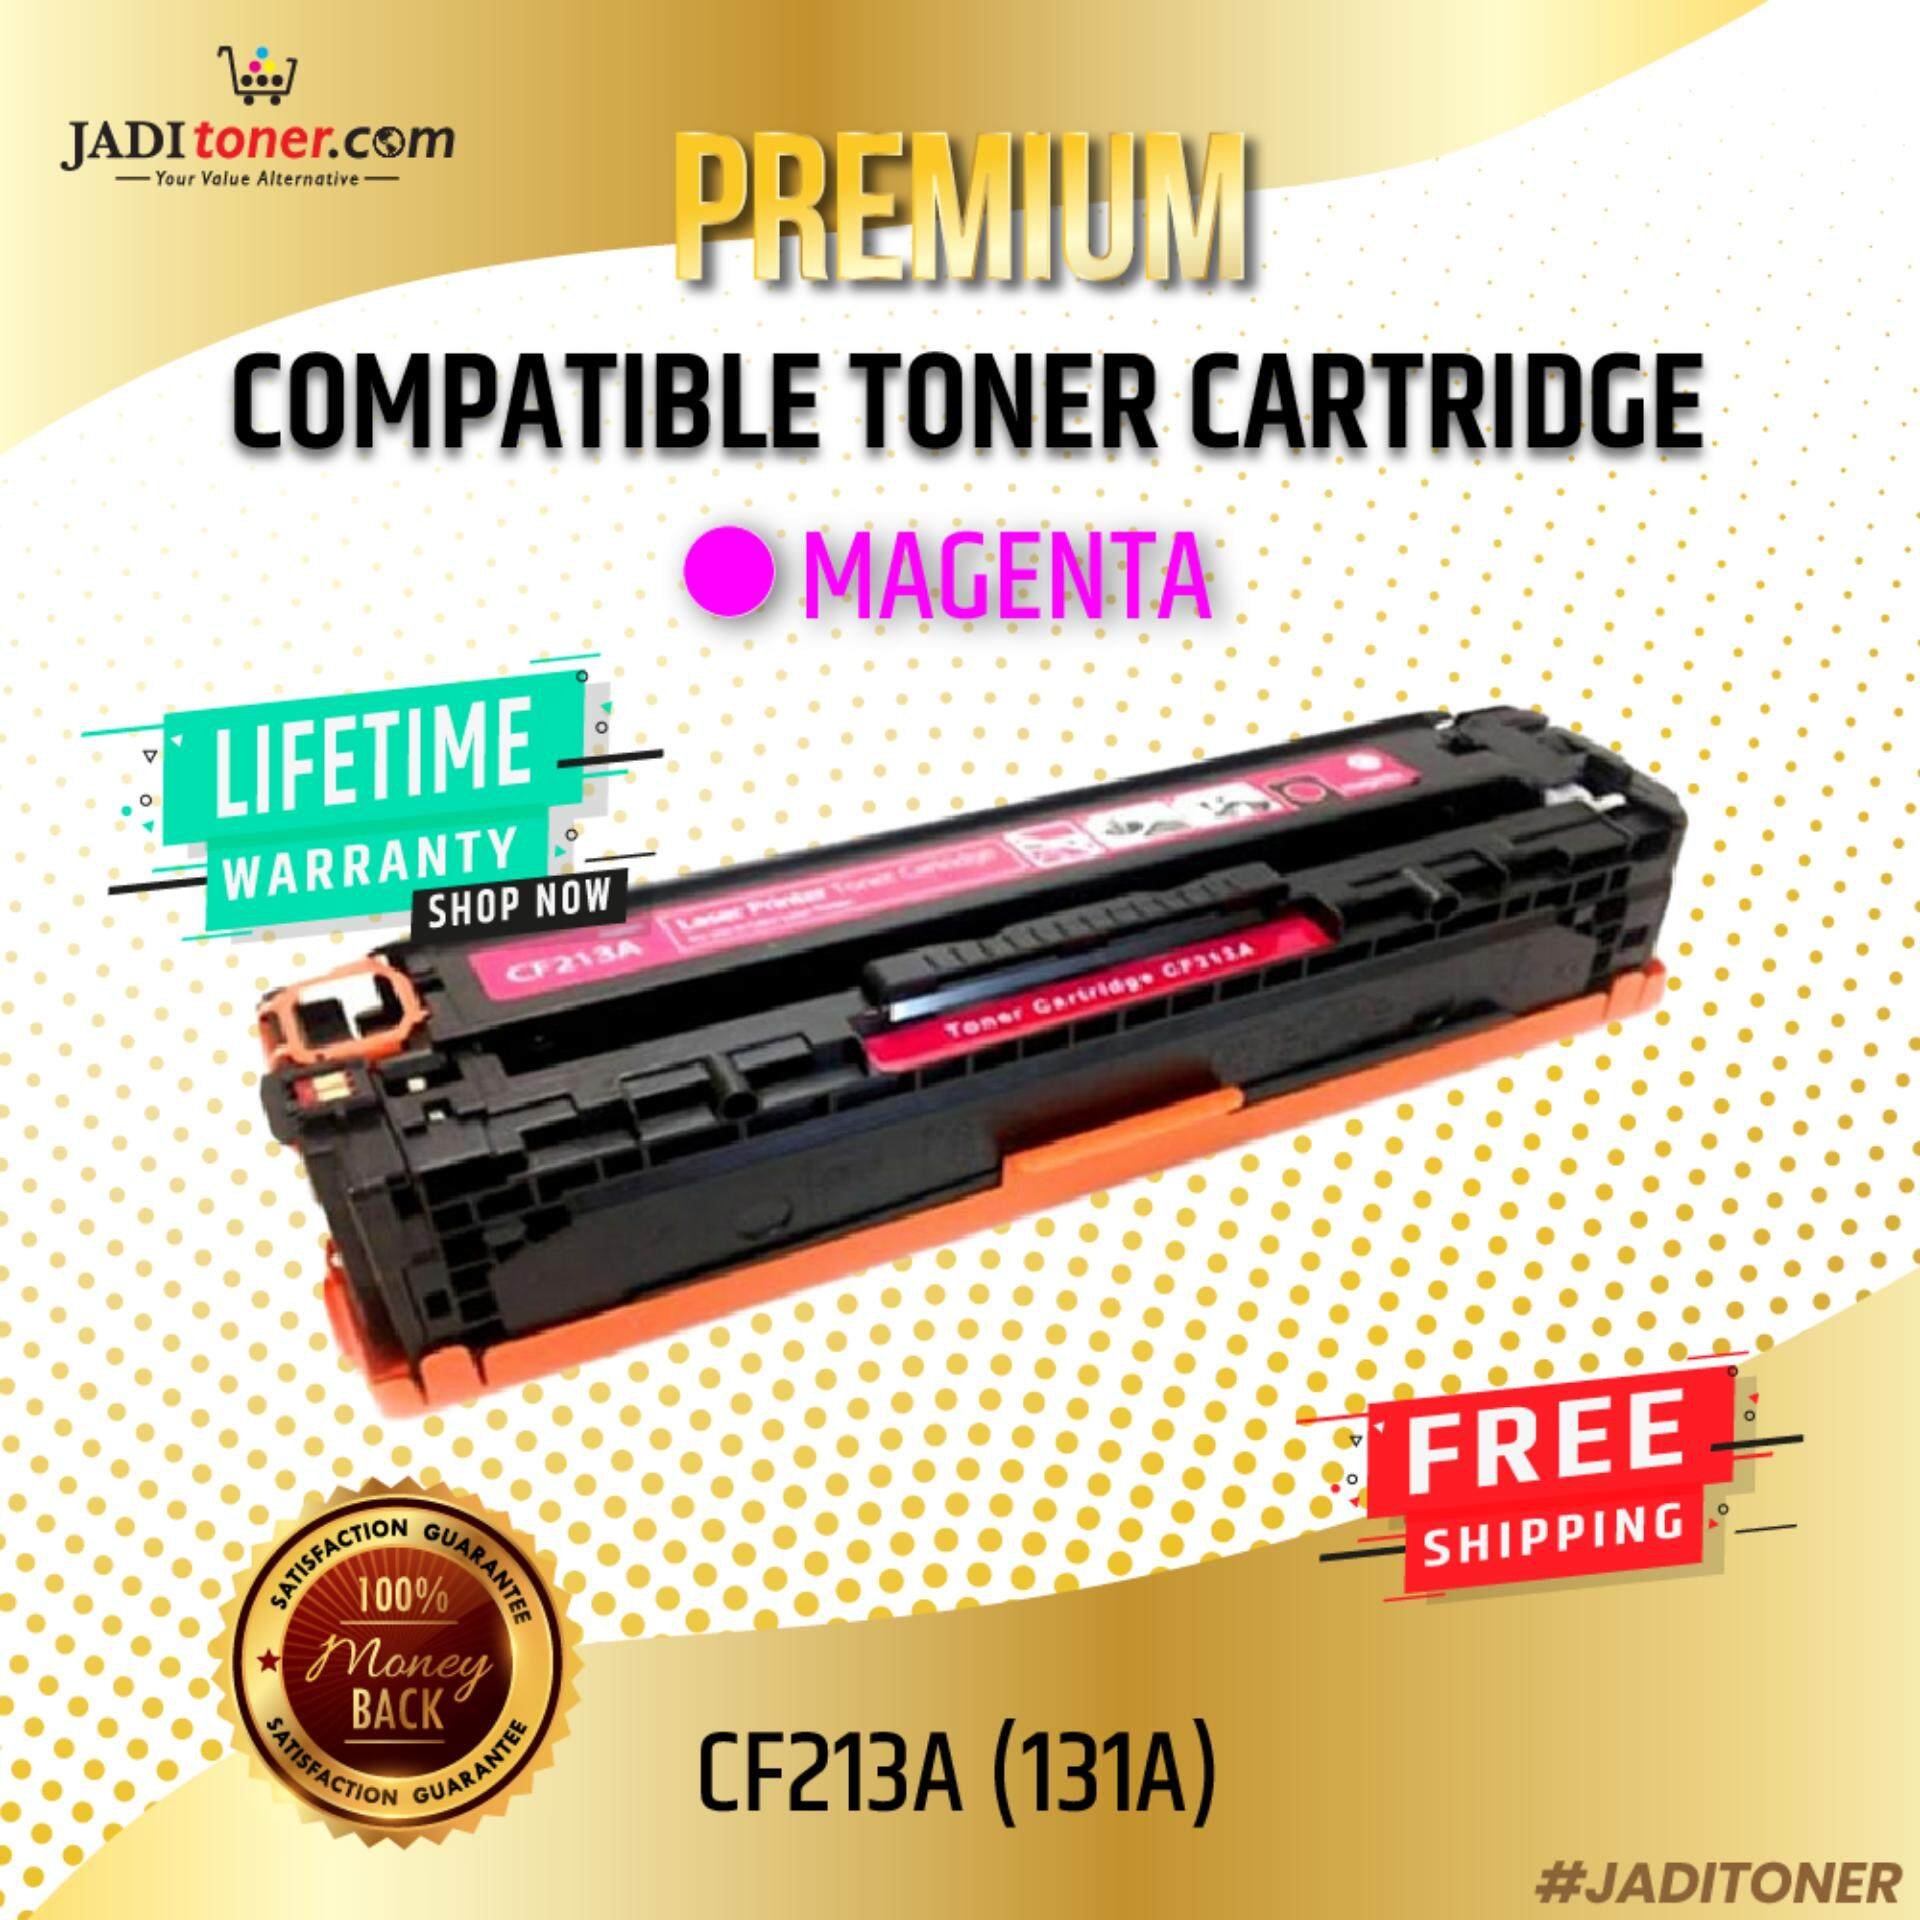 Compatible CF213A 131A Magenta Laser Toner Cartridge For HP Color LaserJet Pro 200 M251nw / HP Color LaserJet Pro 200 M276n / M251 / M276 / HP CF213 213A